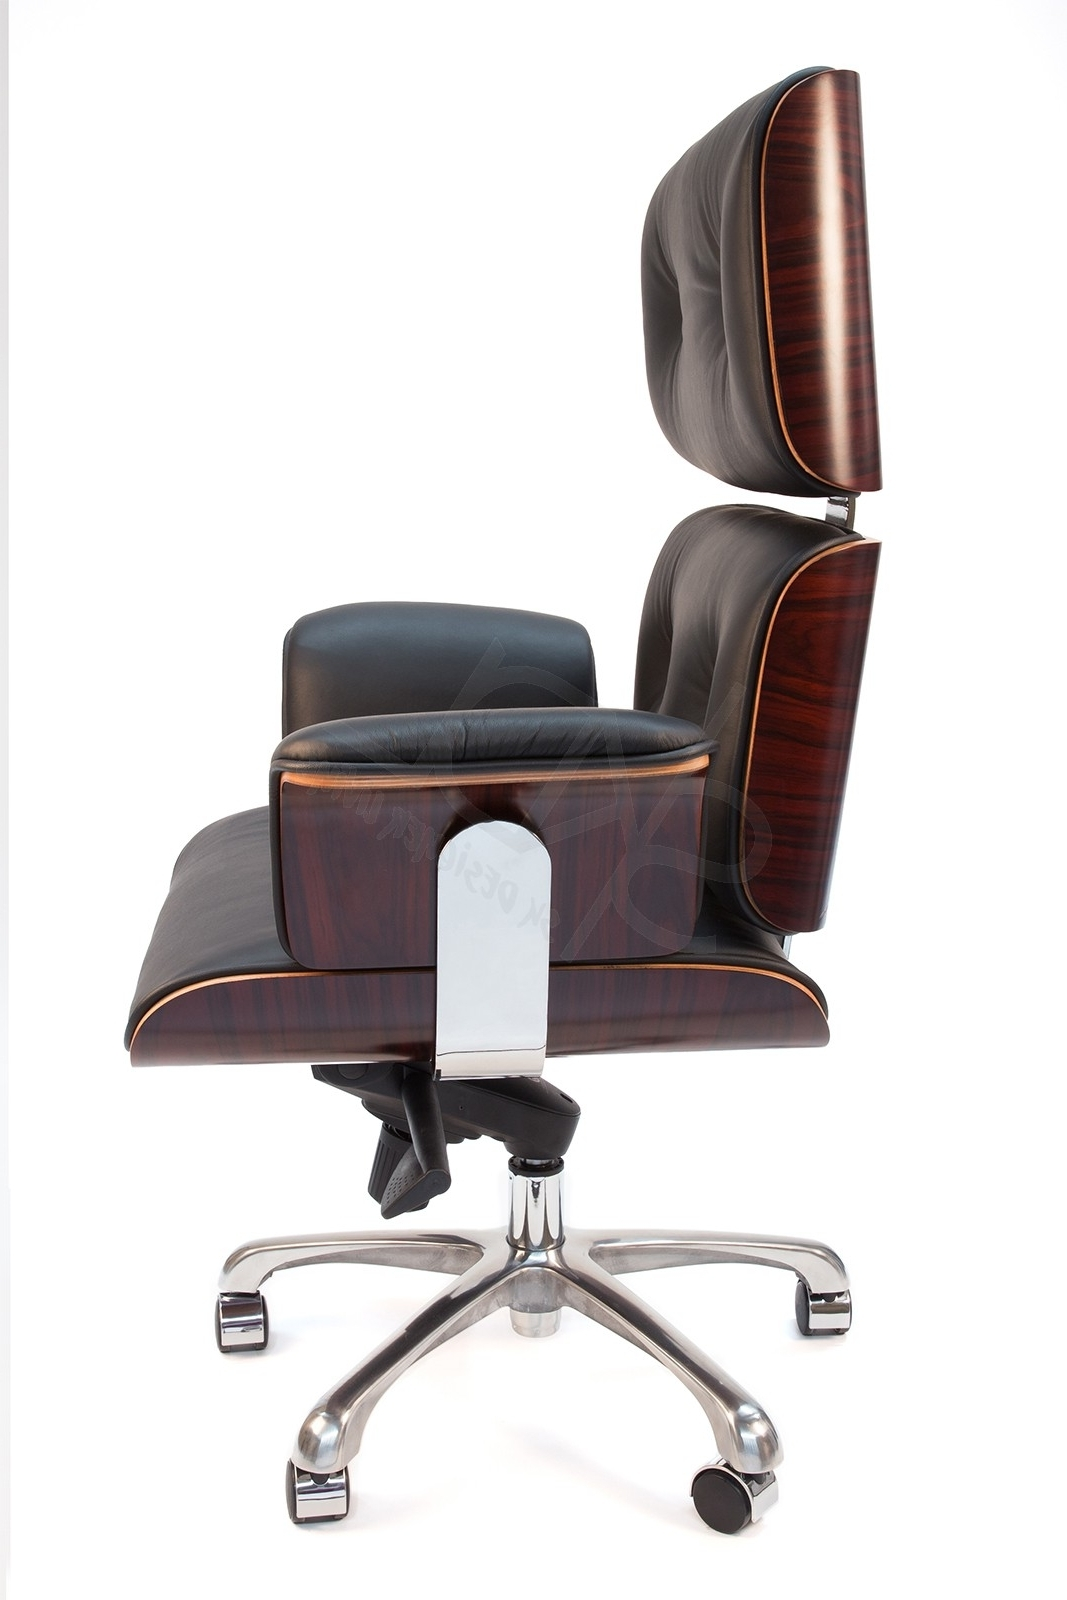 Premium Executive Office Chairs Throughout Most Recent Replica Eames High Back Executive Office Chair (View 12 of 20)